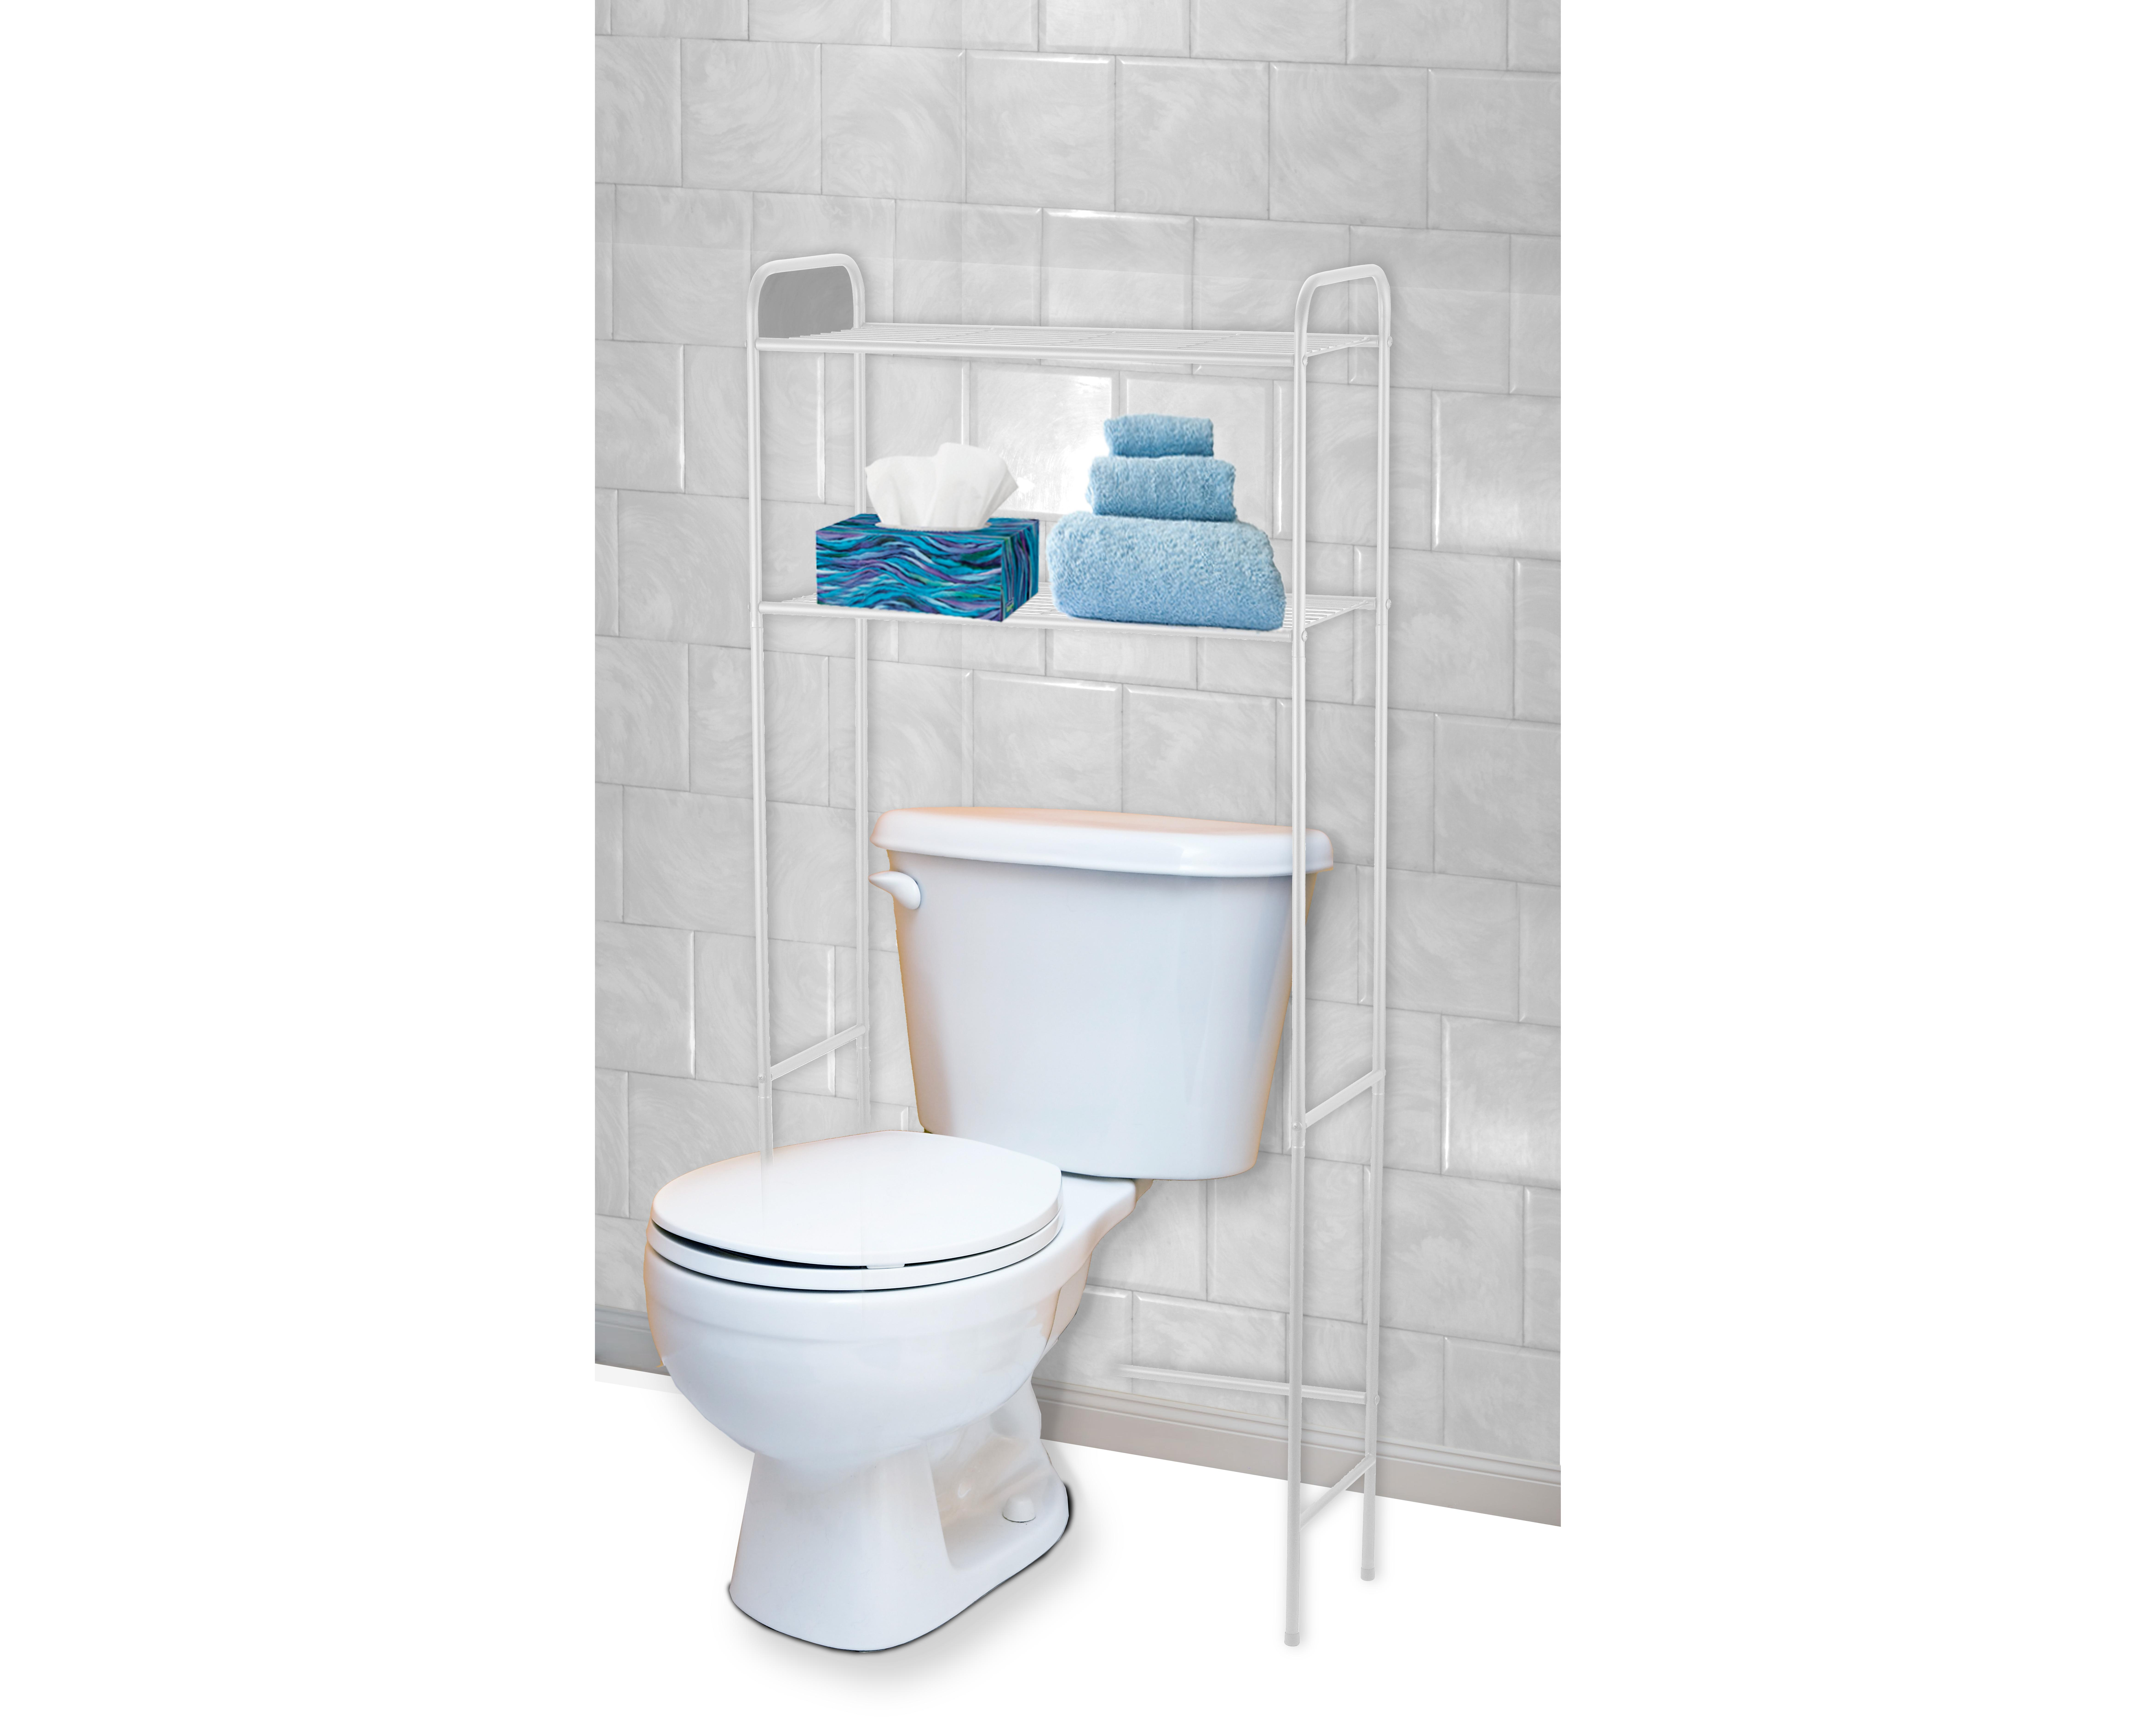 Home Basics 2 Shelf Bathroom Space Saver